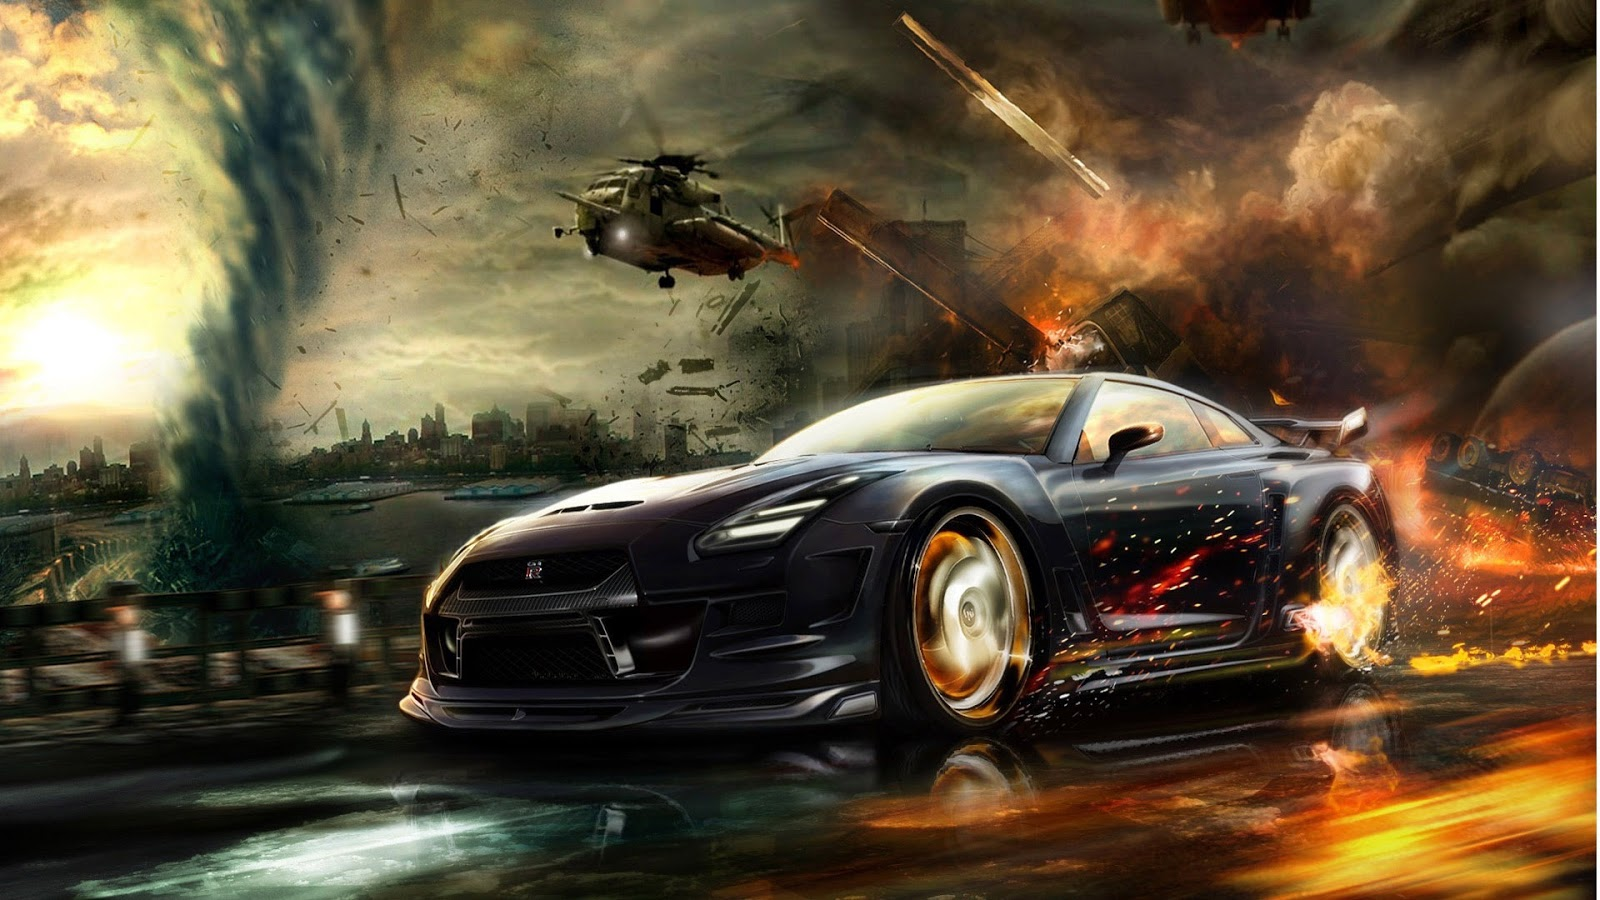 Wallpapers Cool Cars